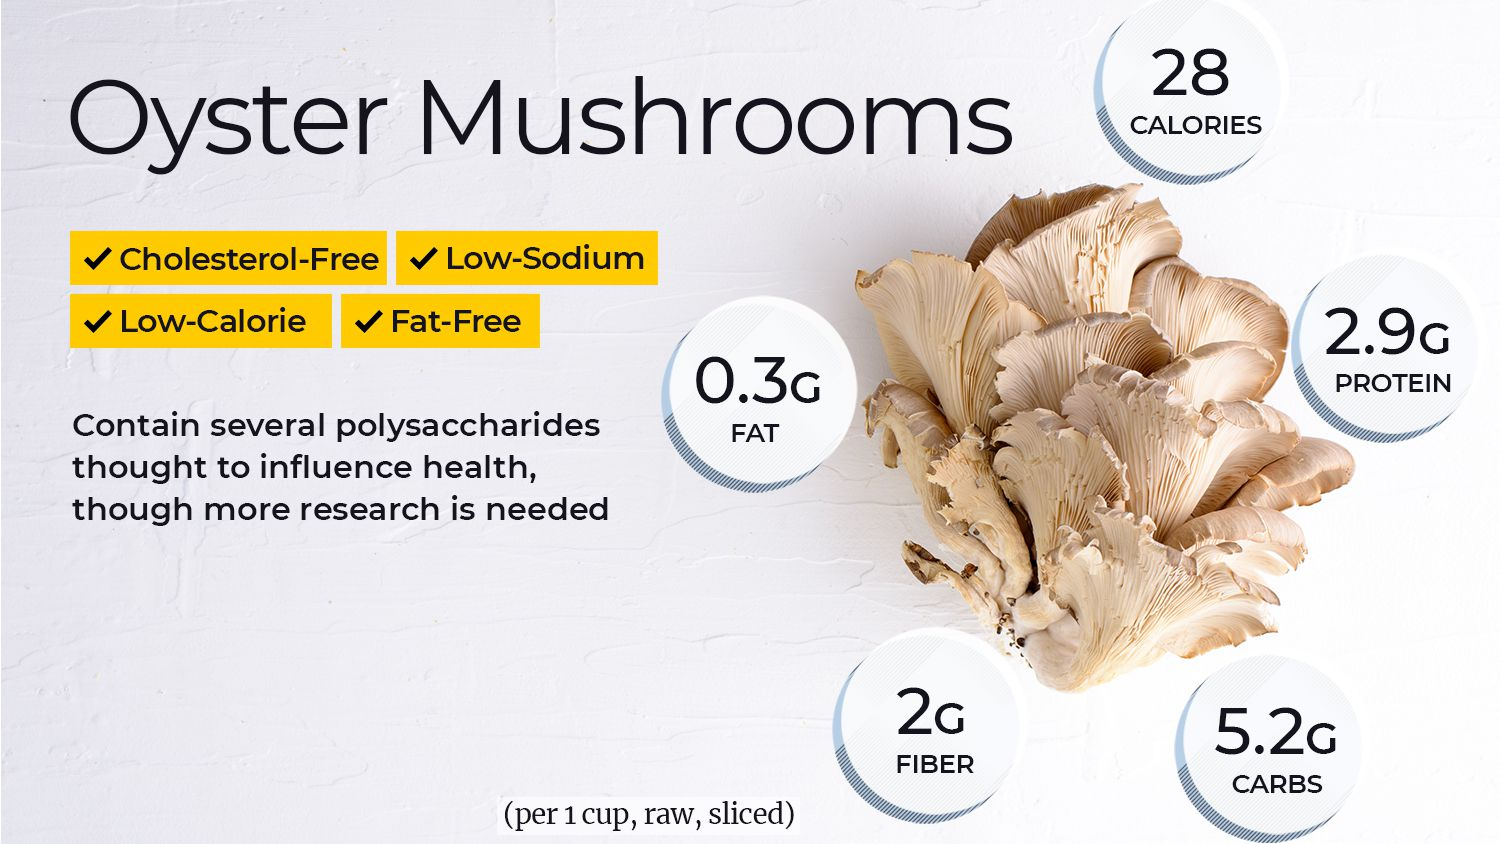 Oyster Mushroom Nutrition Facts And Health Benefits